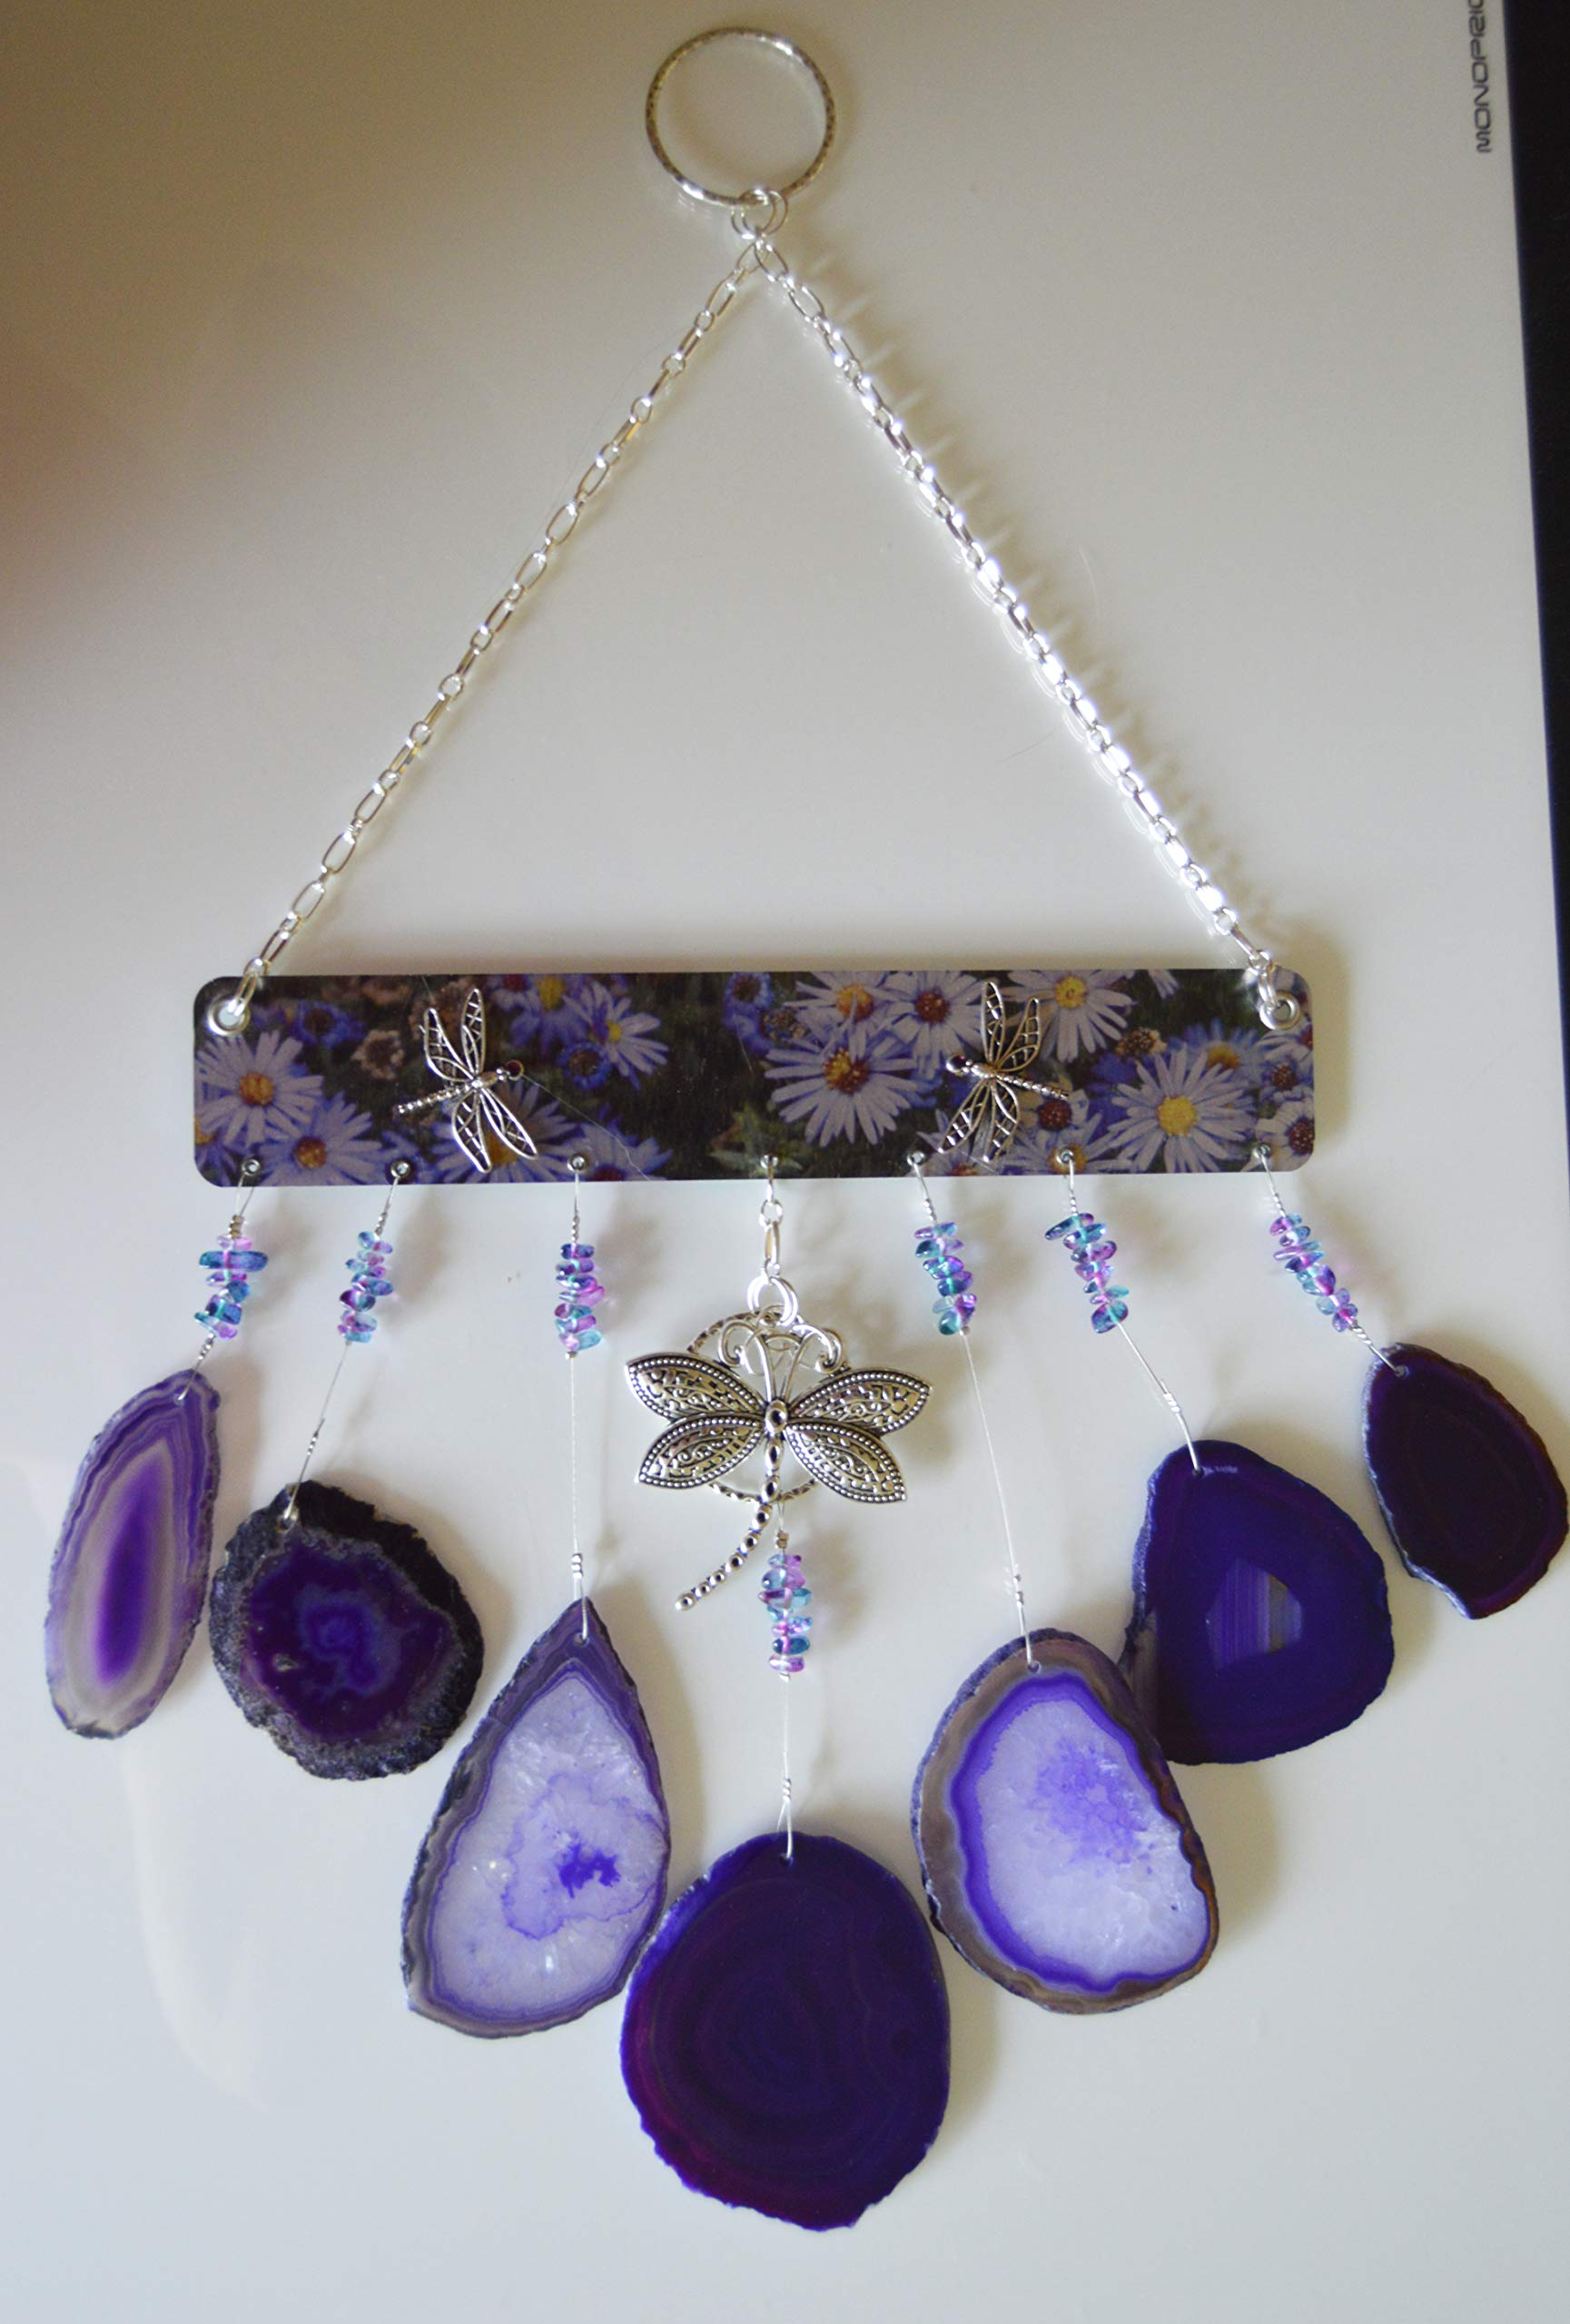 Agate slice geode wind chime windchime hanging wind chime mobile Dragonfly Purples